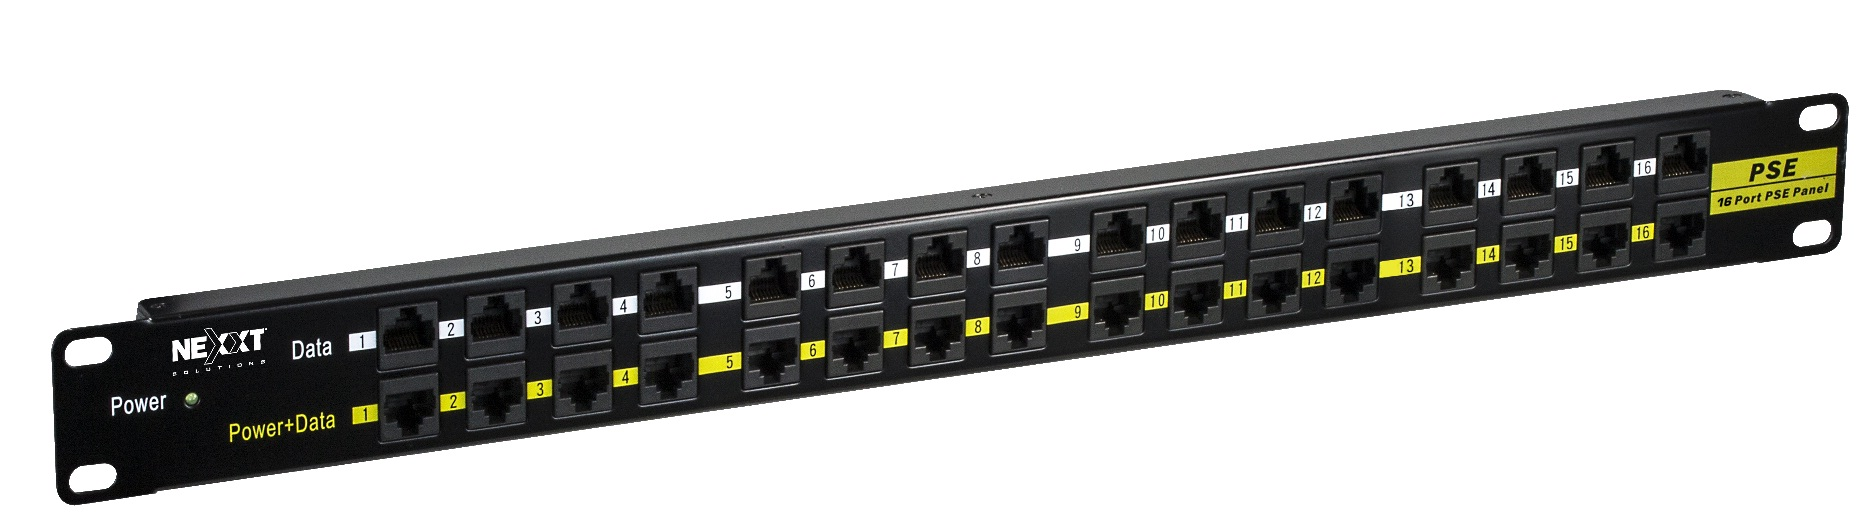 Rj-45 Patch Panel 16 Puertos Nexxt Poe Passive